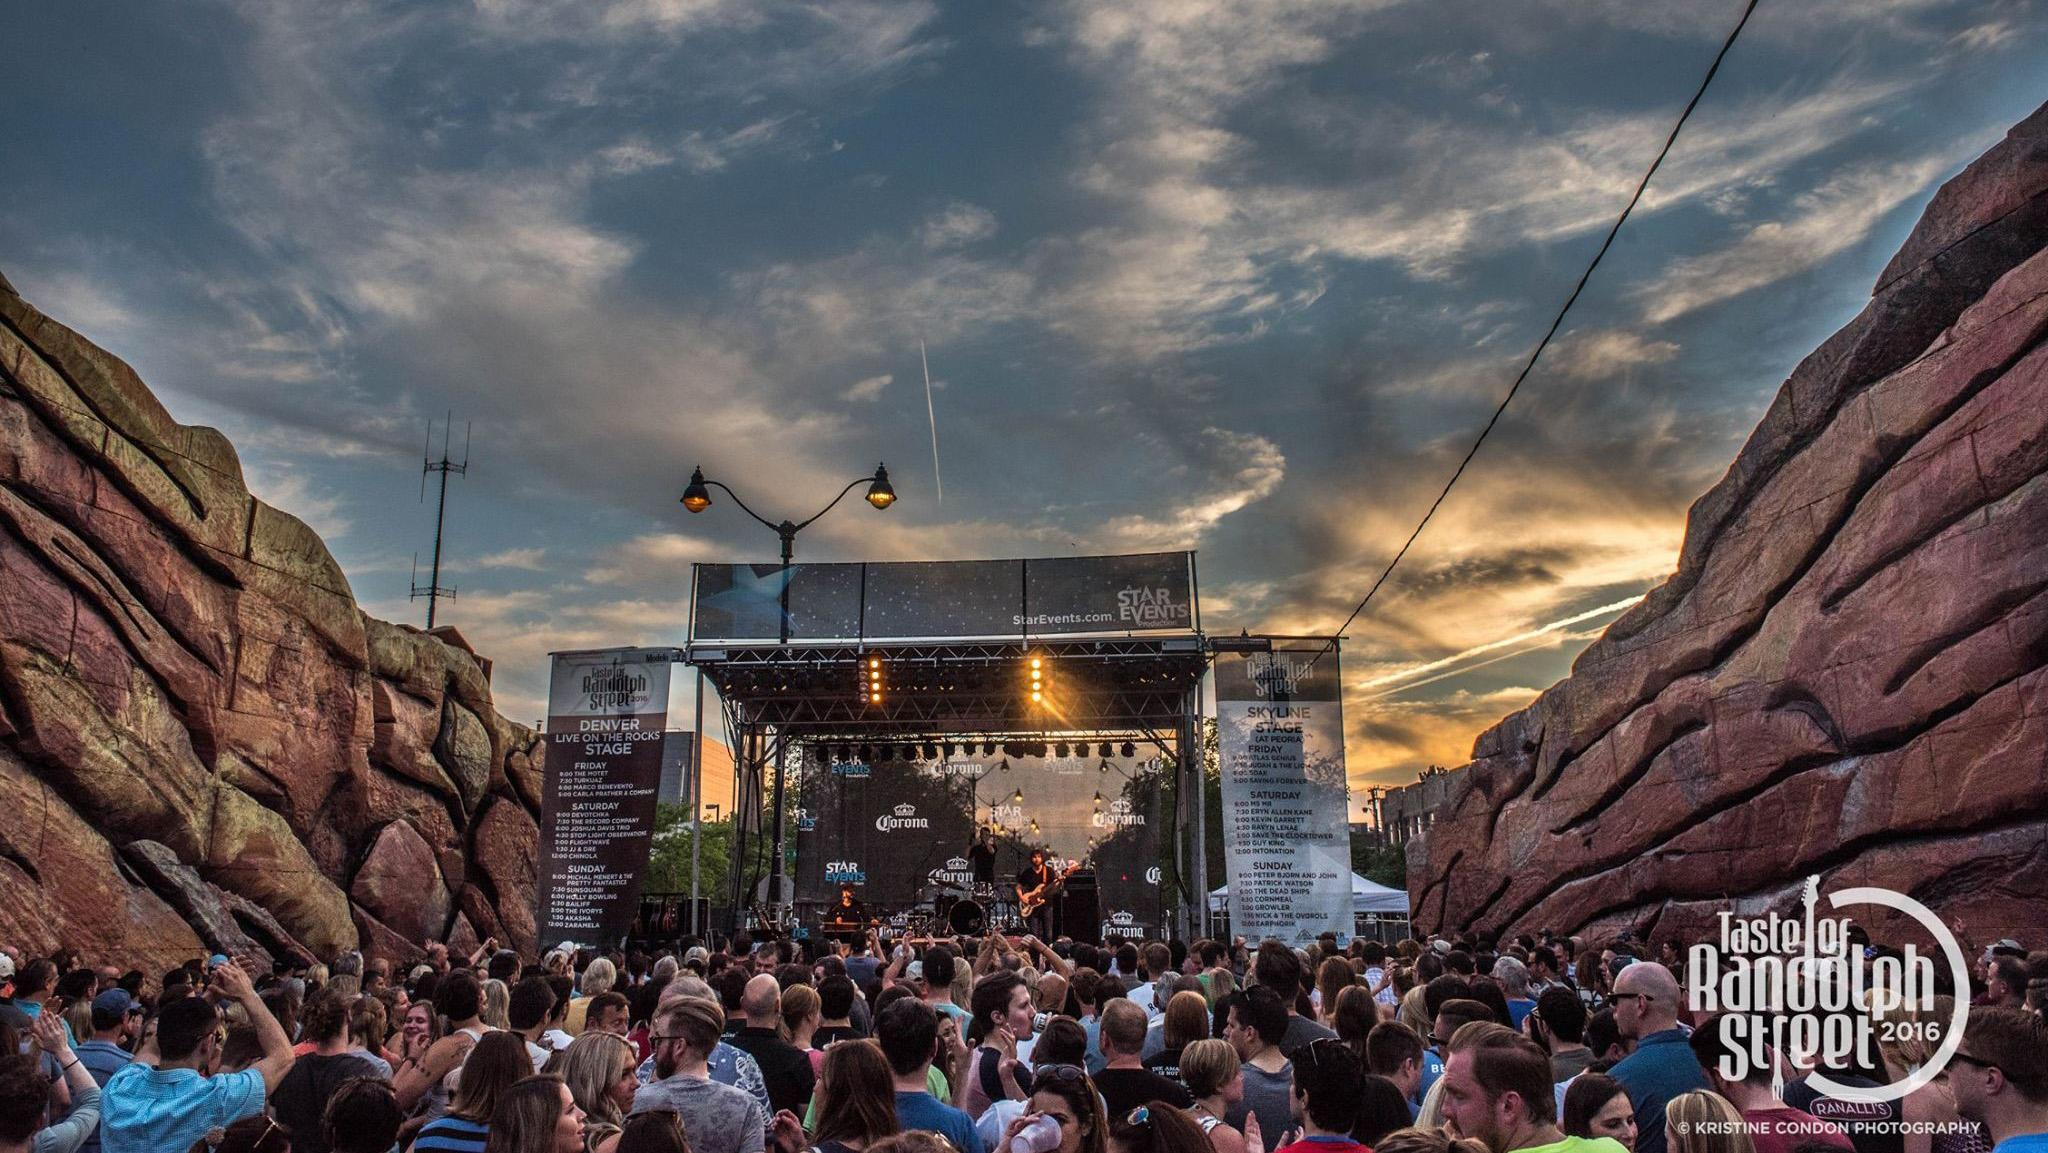 The Denver Live on the Rocks stage replicates Colorado's infamous Red Rocks Amphitheater. (Taste of Randolph / Facebook)